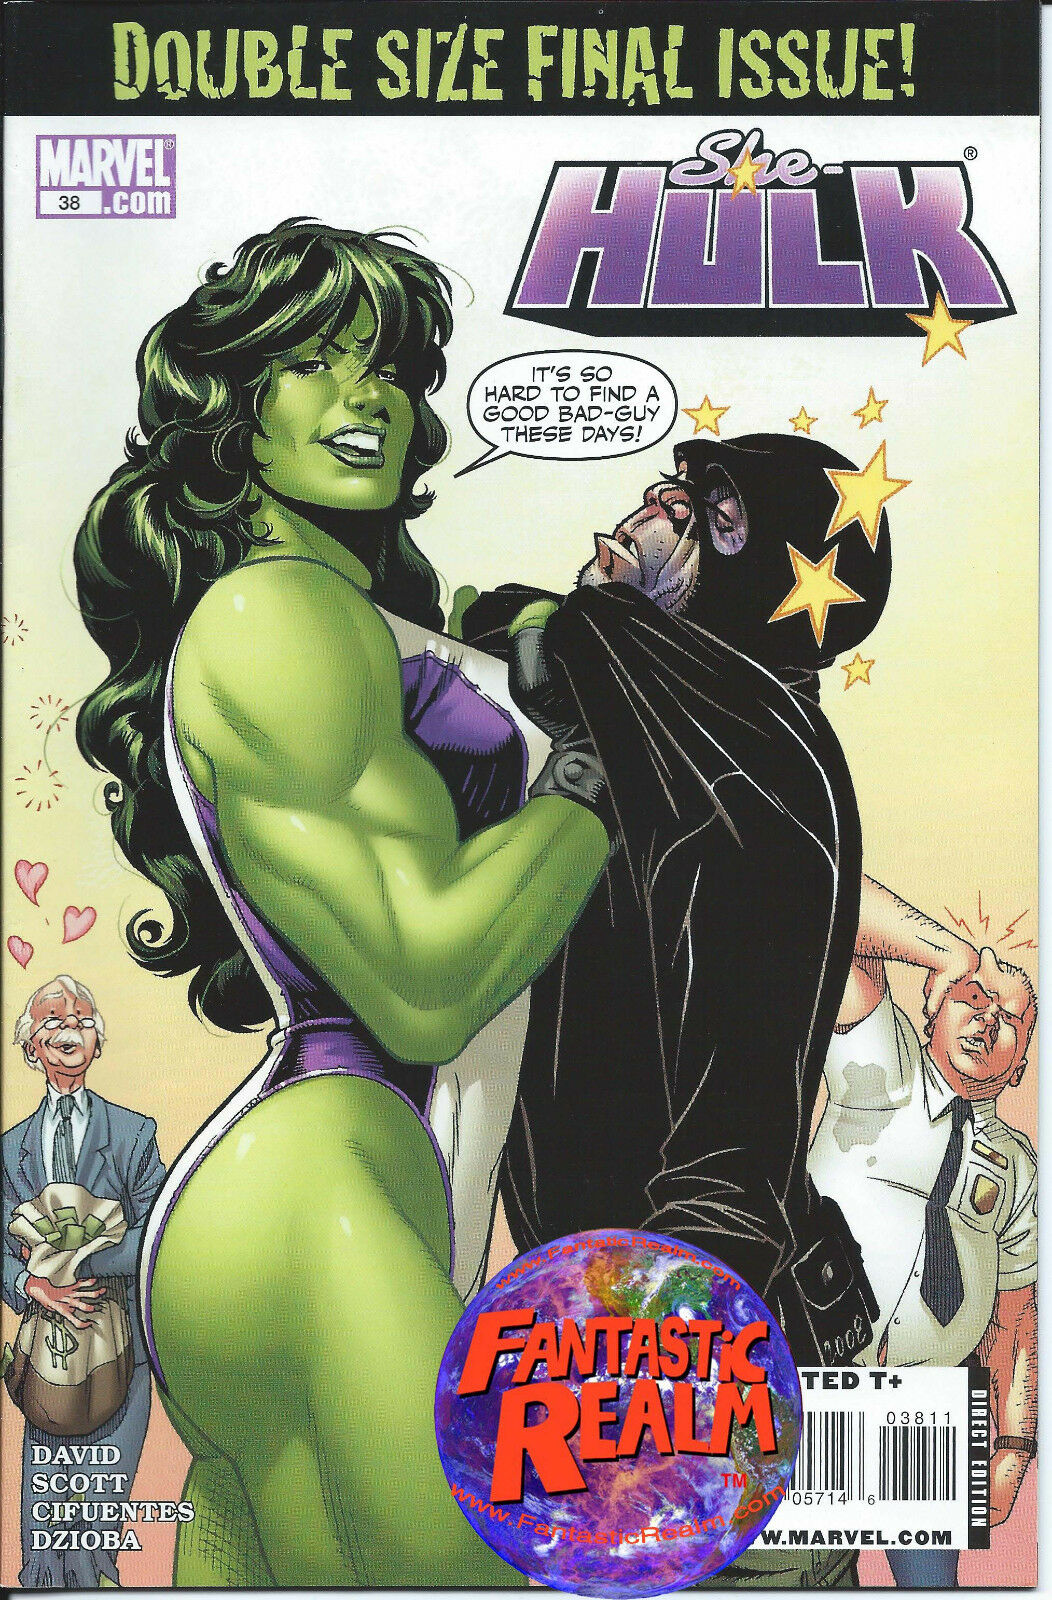 SHE-HULK #38 DOUBLE SIZE FINAL ISSUE MARVEL COMICS